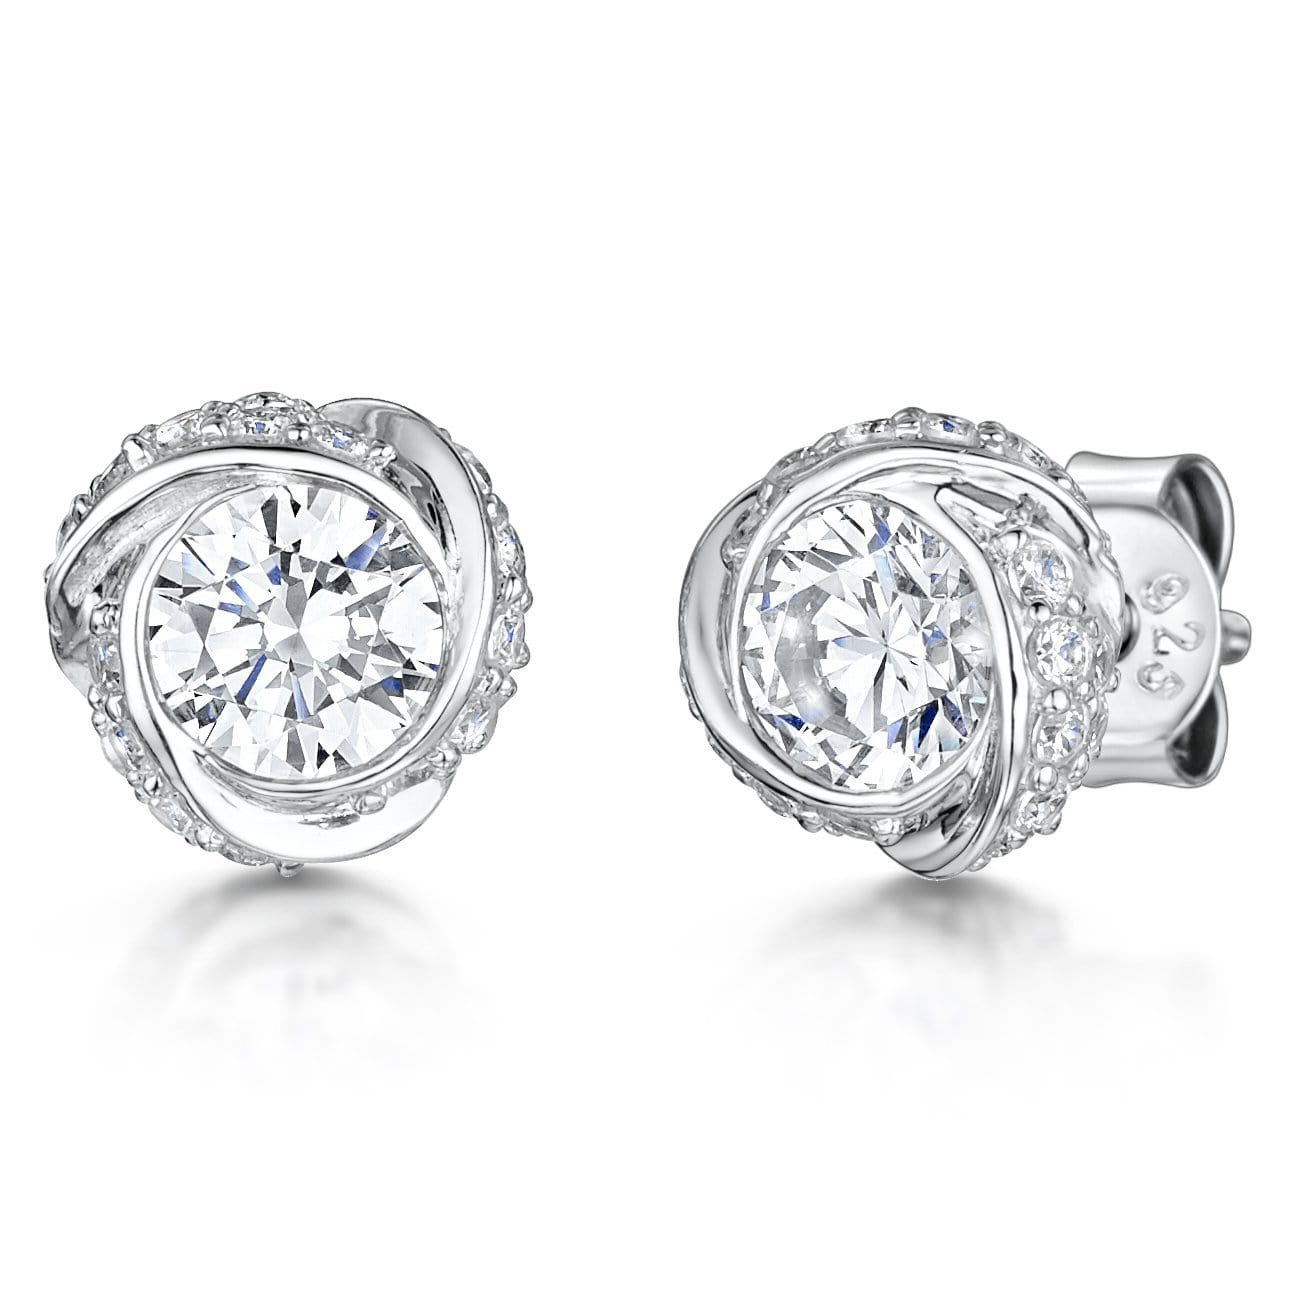 Sterling Silver Swirl  Solitaire Stud Earrings Set With A Cubic Zirconia Stone - JOOLS By Jenny Brown